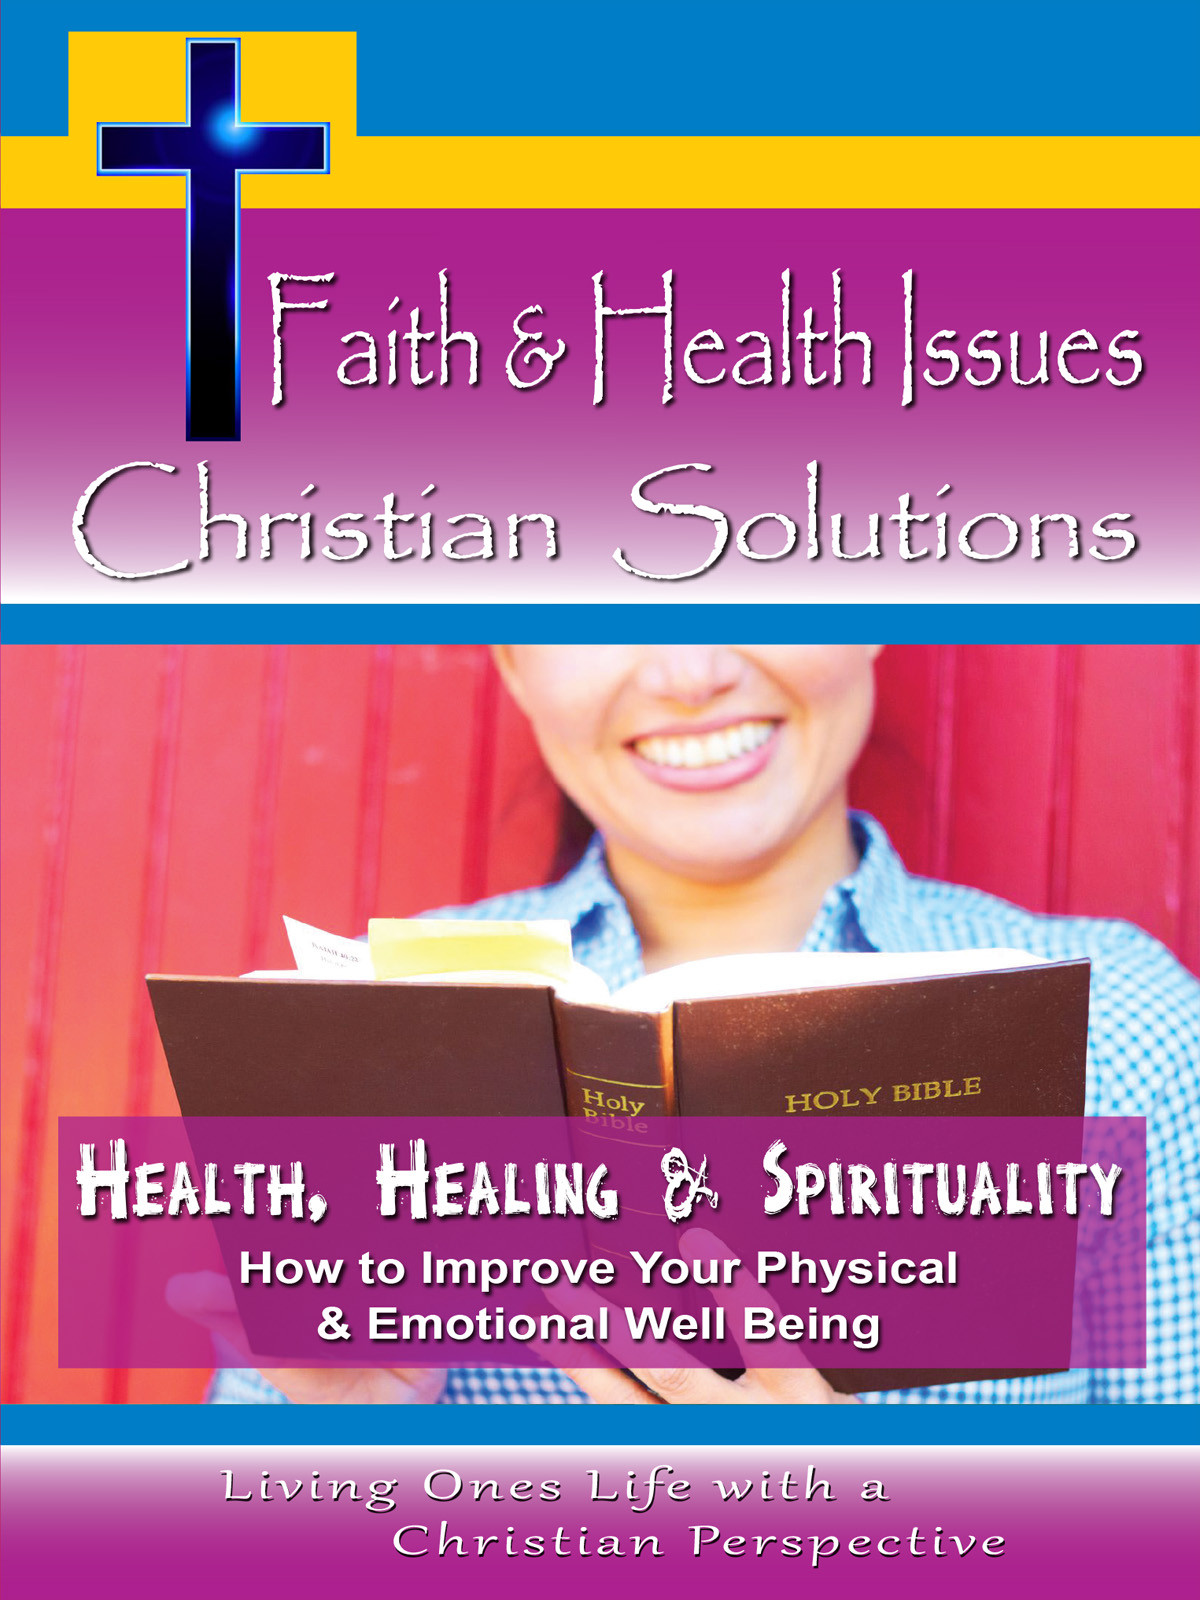 CH10045 - Health, Healing and Spirituality How to Improve Your Physical & Emotional Well Being